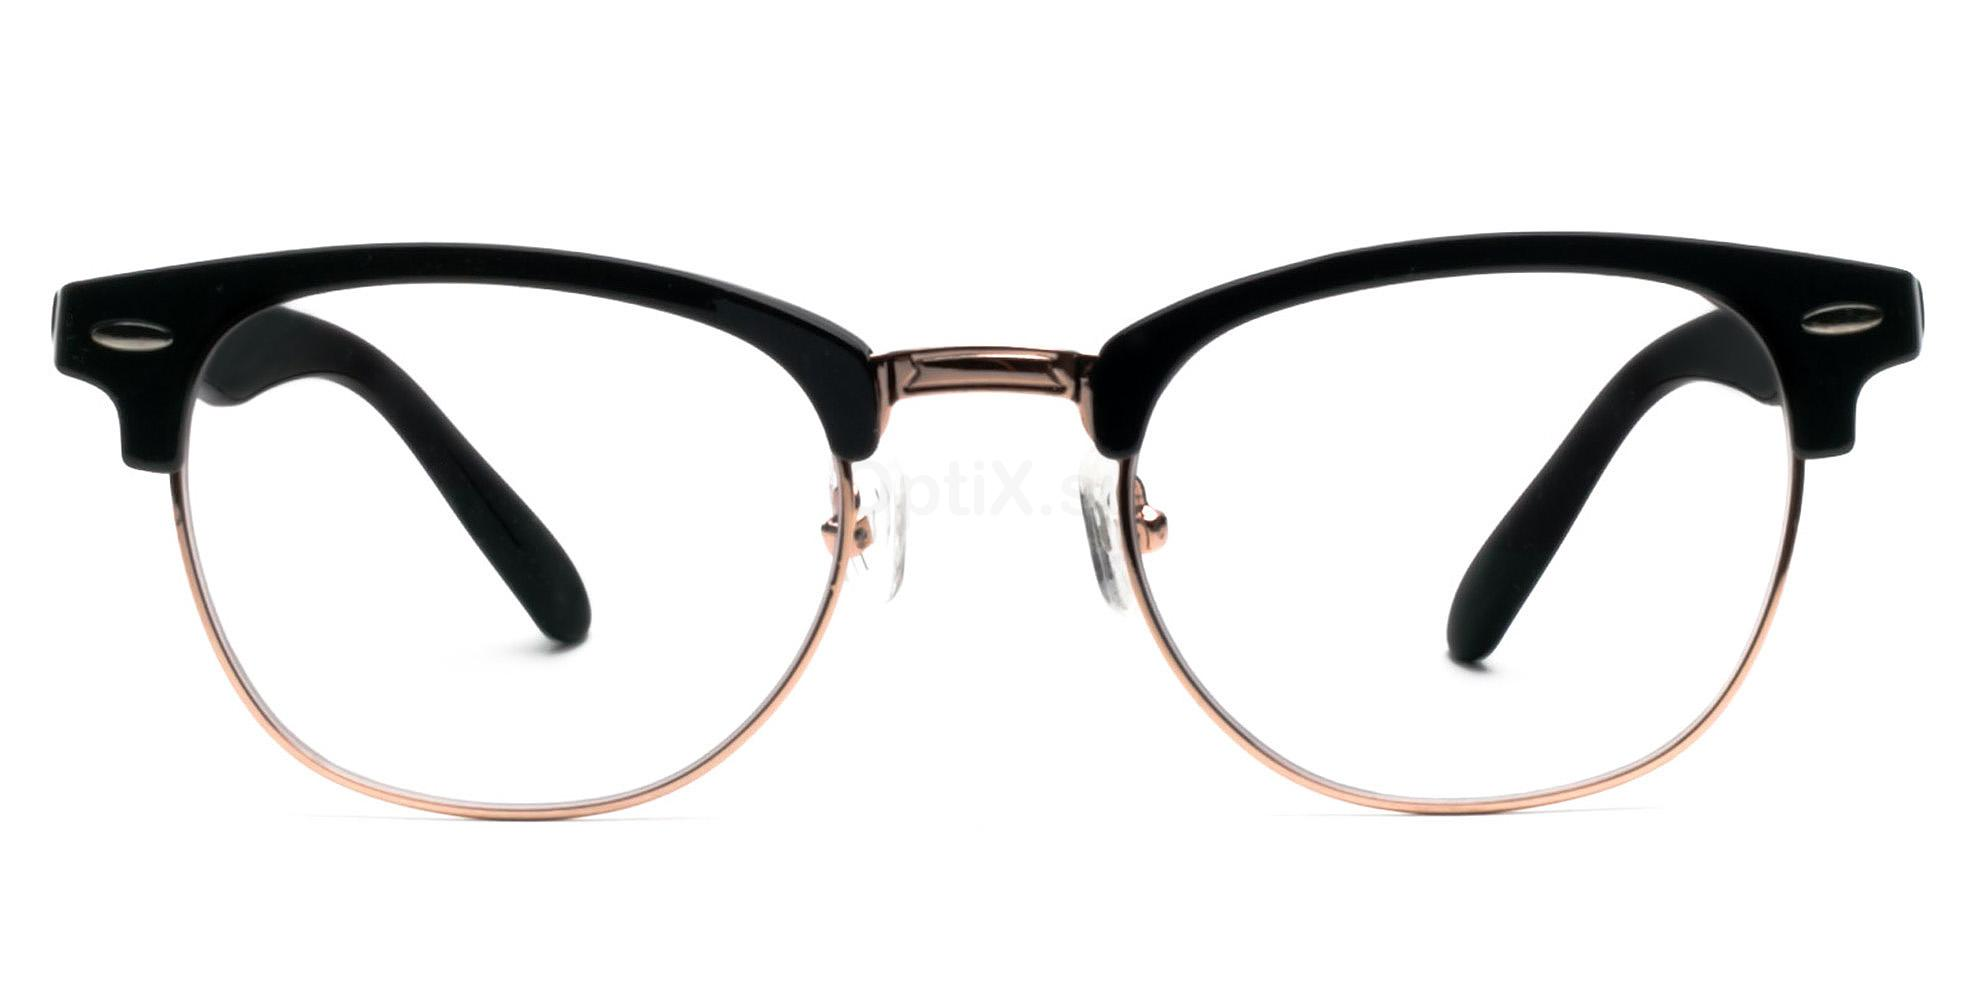 COL1 F3026 Glasses, Infinity